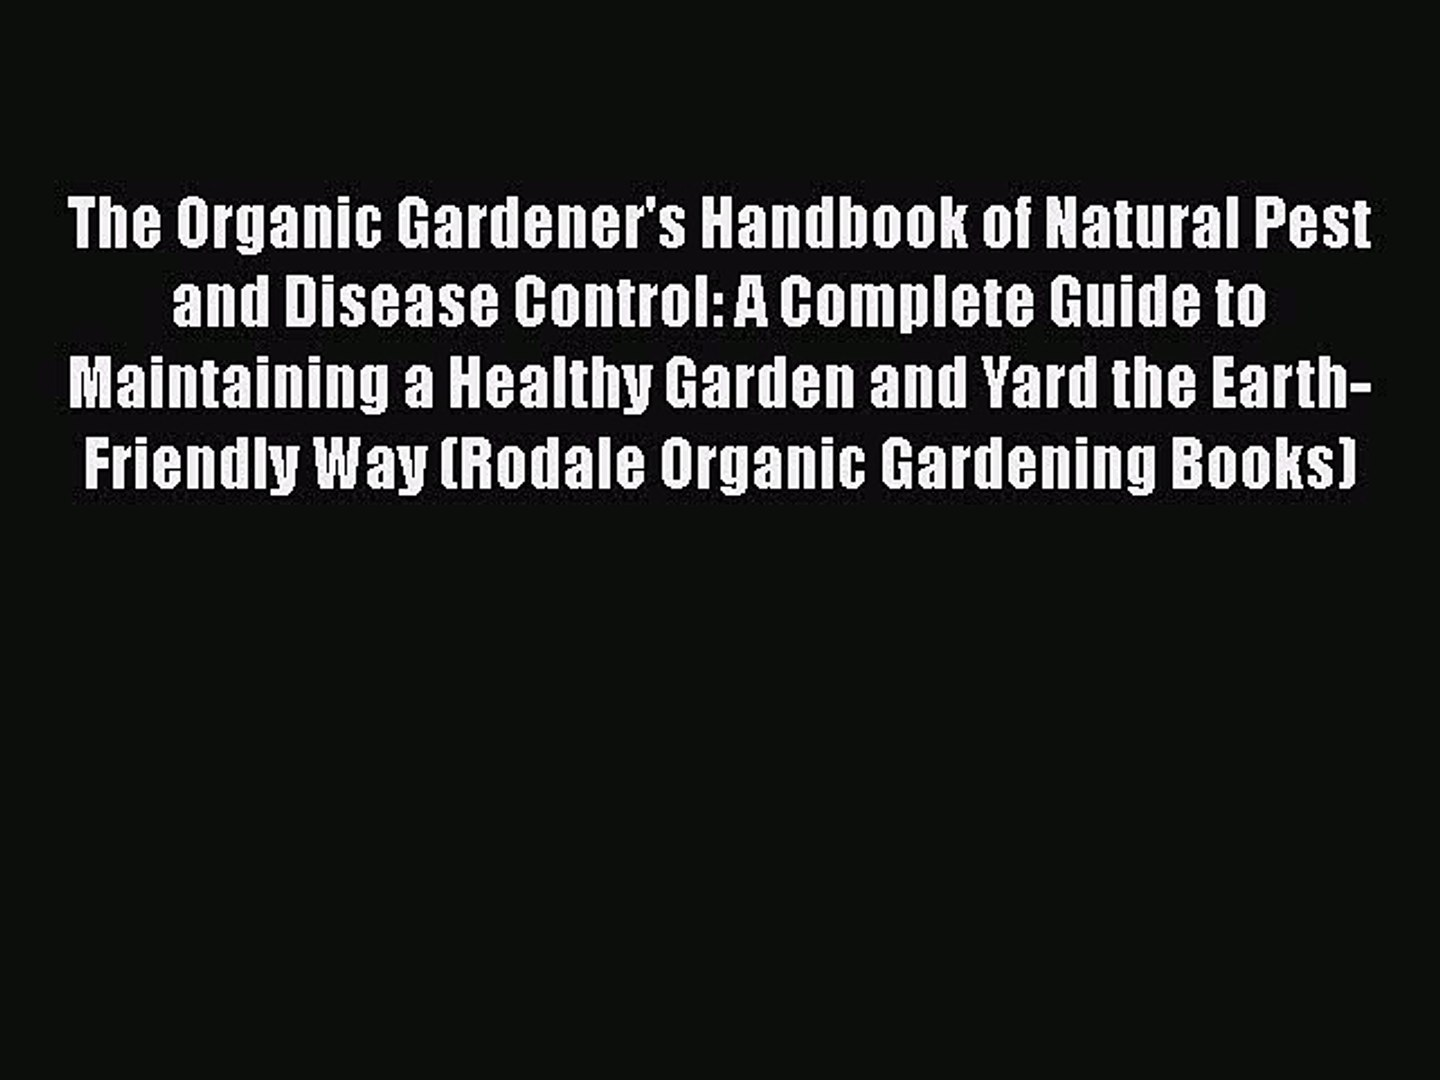 Download The Organic Gardener's Handbook of Natural Pest and Disease Control: A Complete Guide